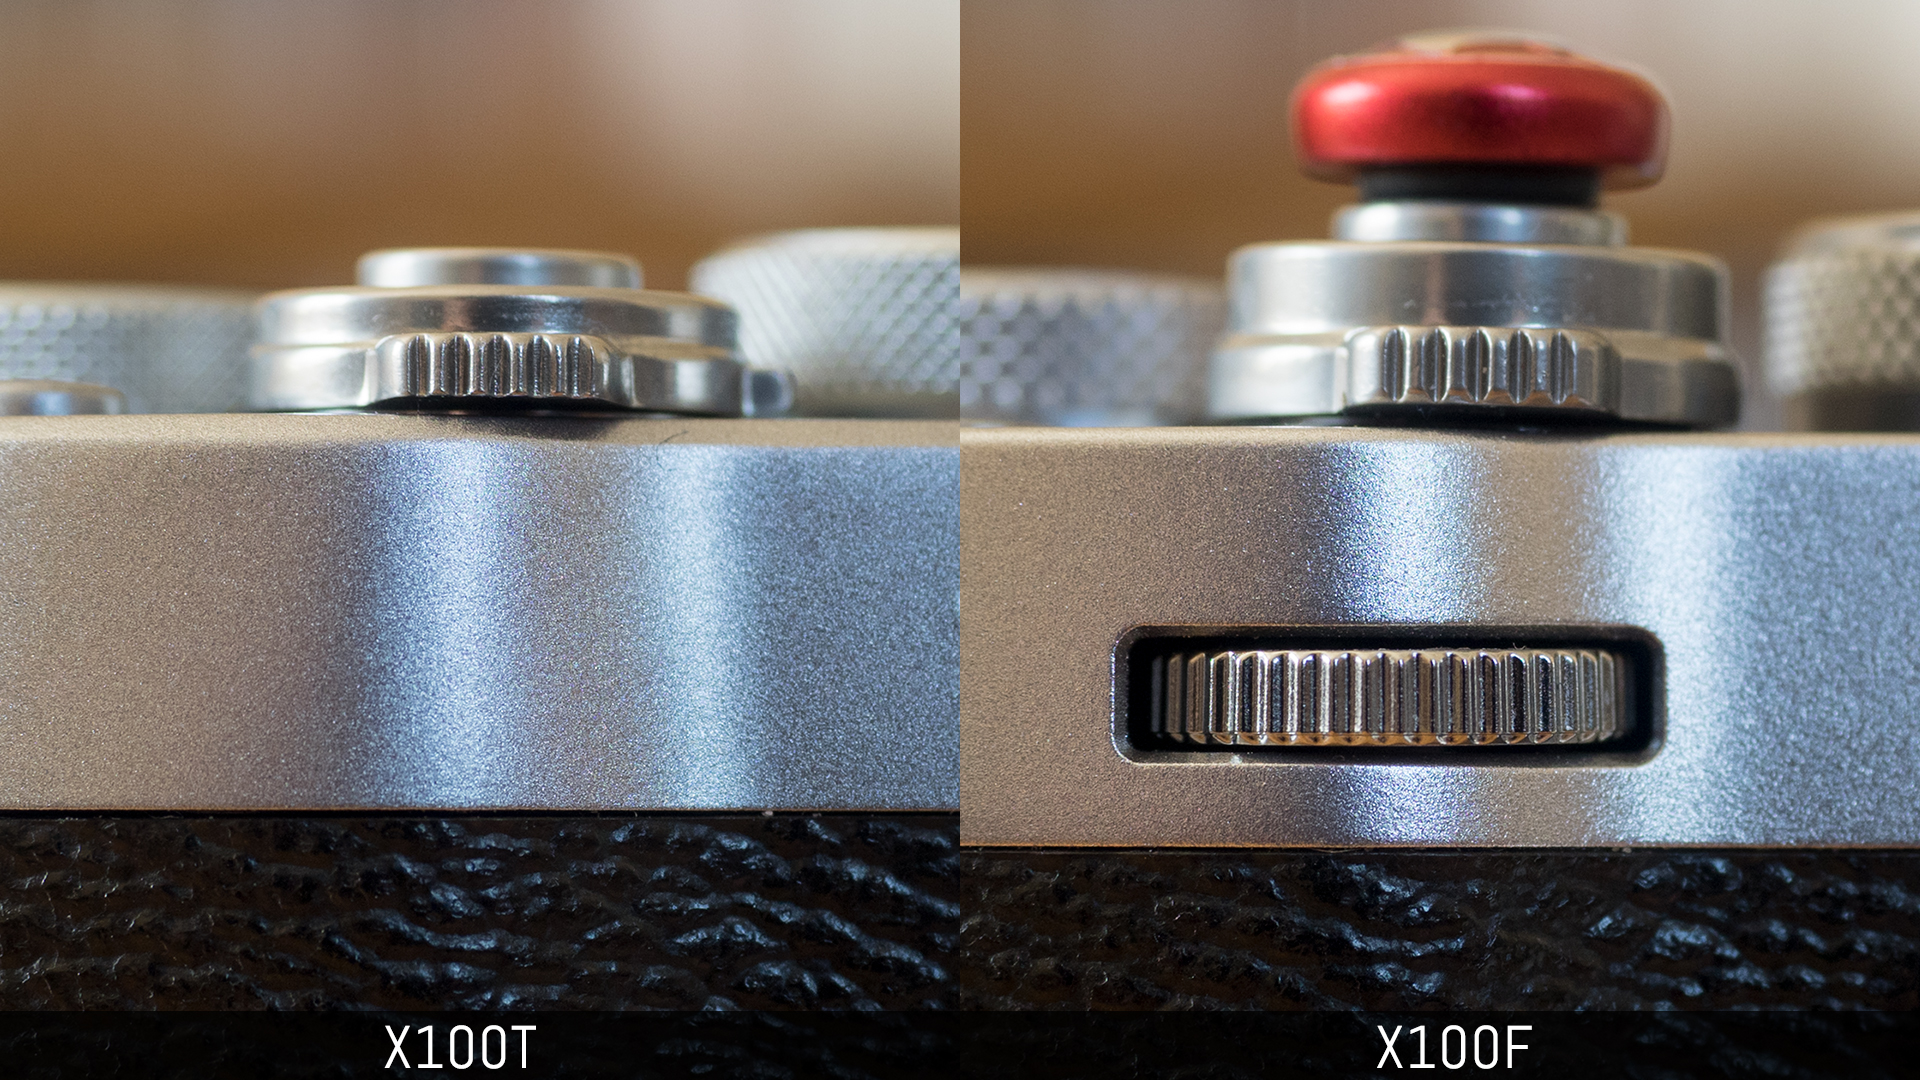 Fujifilm X100t Vs X100f The Complete Comparison Camera X100s Iphone 5 Custom Hard Case Total Number Of Customisable Buttons Are Same On Both Cameras But It All